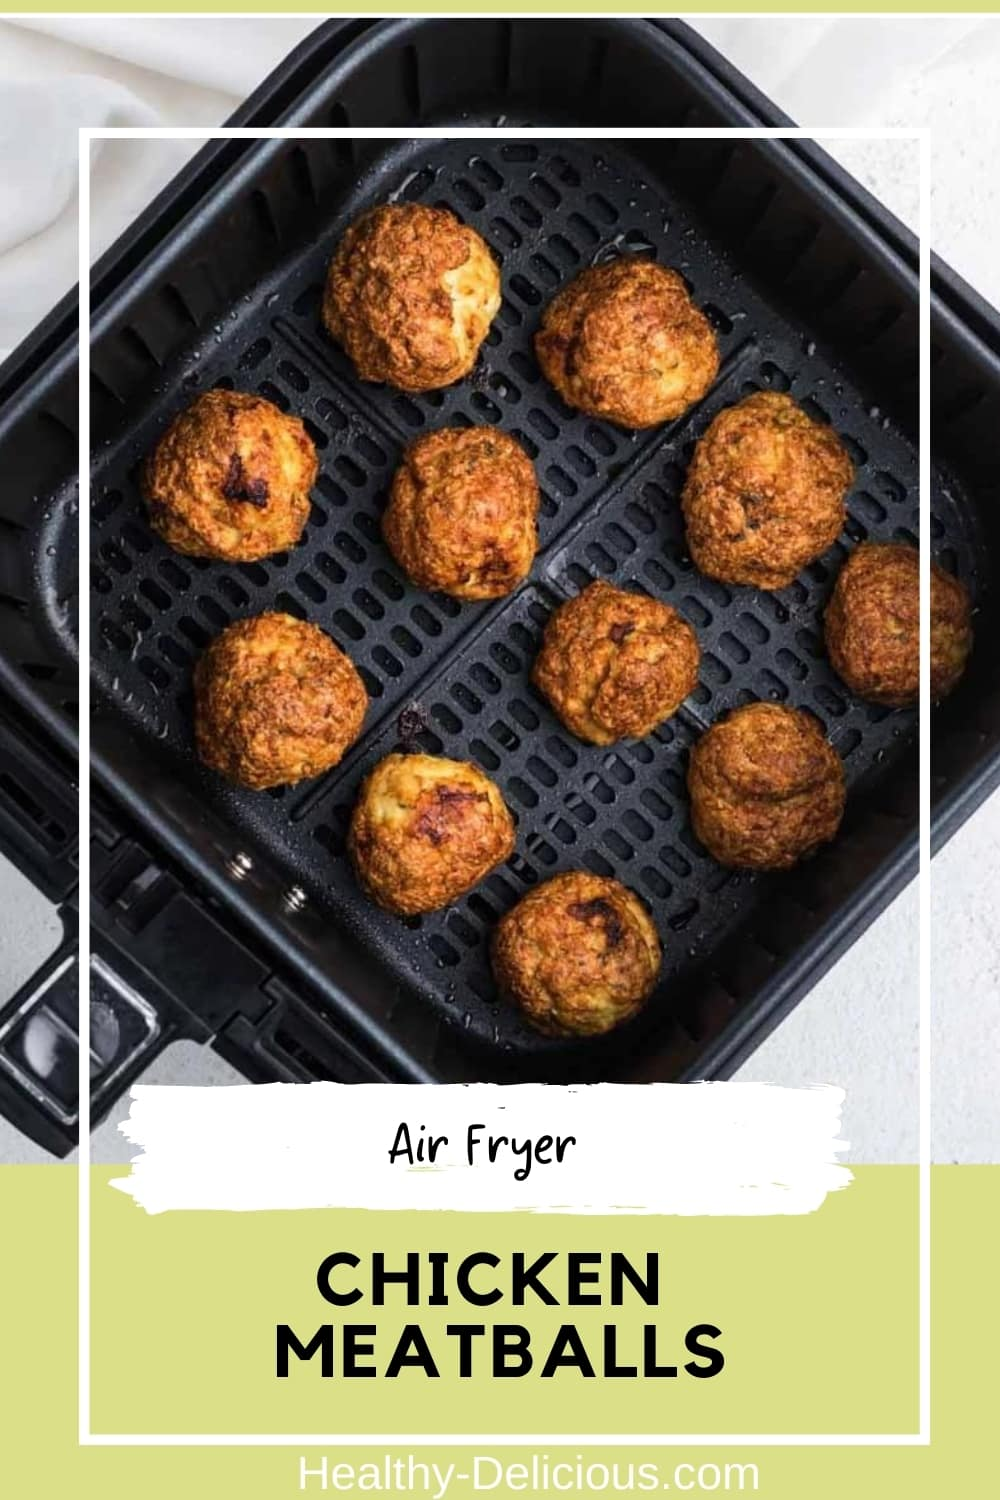 Air fryer chicken meatballs are an easy and versatile dinner that the whole family will love. They have a crisp, golden crust surrounding a juicy center and are ready in under a half-hour with minimal cleanup! Go ahead and make a double batch, because these delicious meatballs also freeze really well. These can be used as Italian-style meatballs with pasta and sauce, for Swedish meatballs, or even in meatball soup. via @HealthyDelish